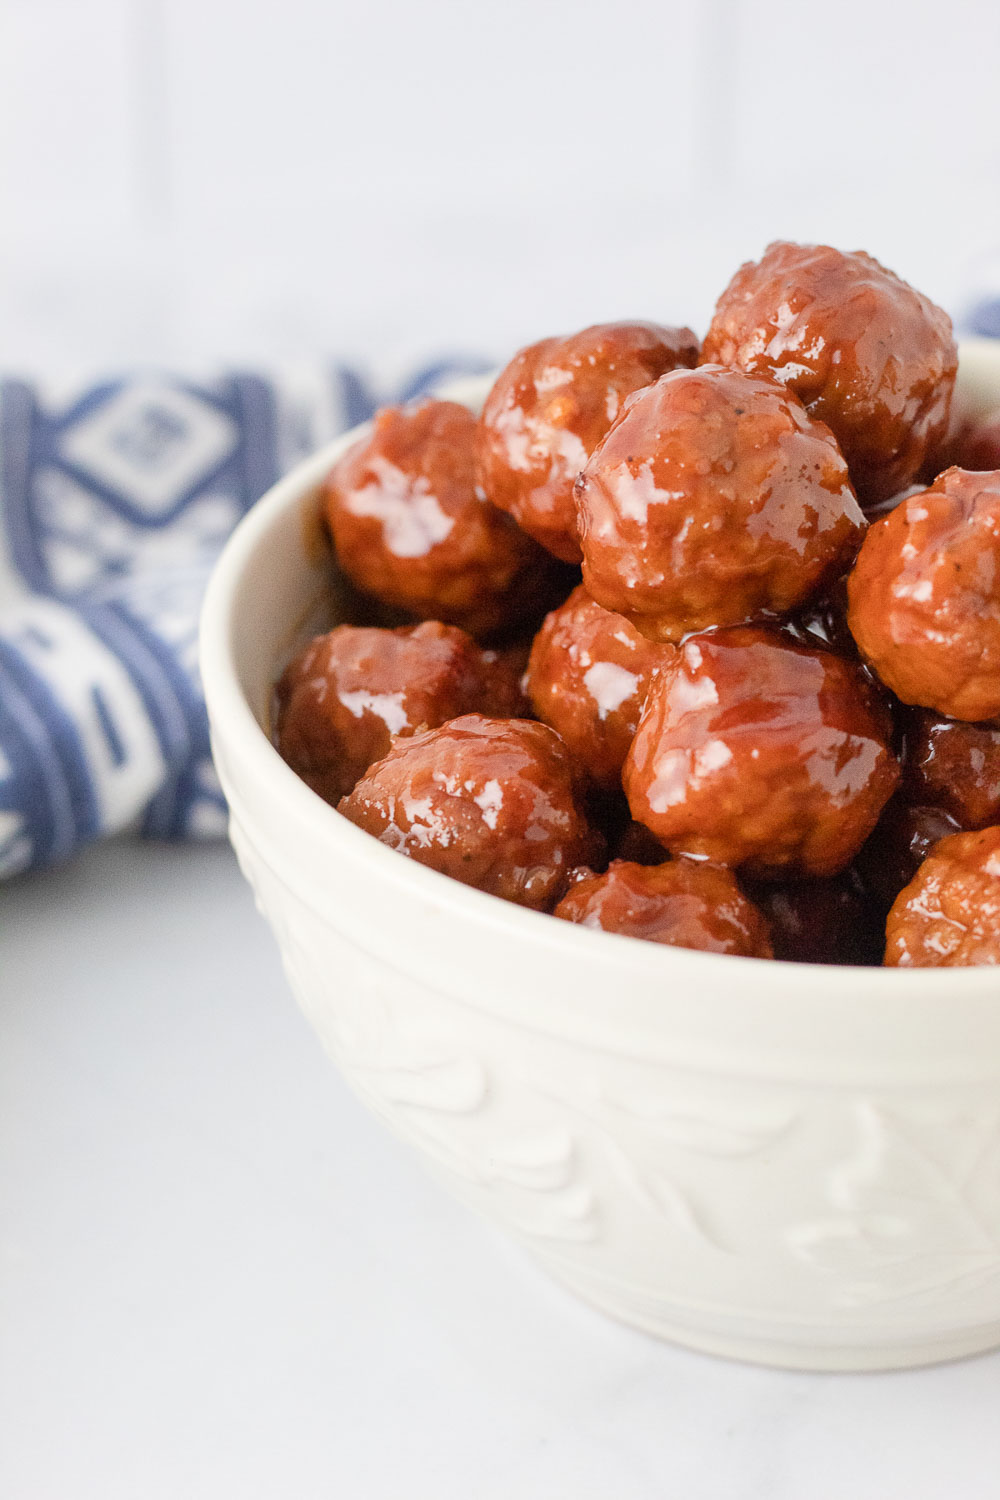 Sticky, a touch spicy, juicy and so tasty! These Slow Cooker Party Meatballs make the perfect party appetizer or quick family dinner.